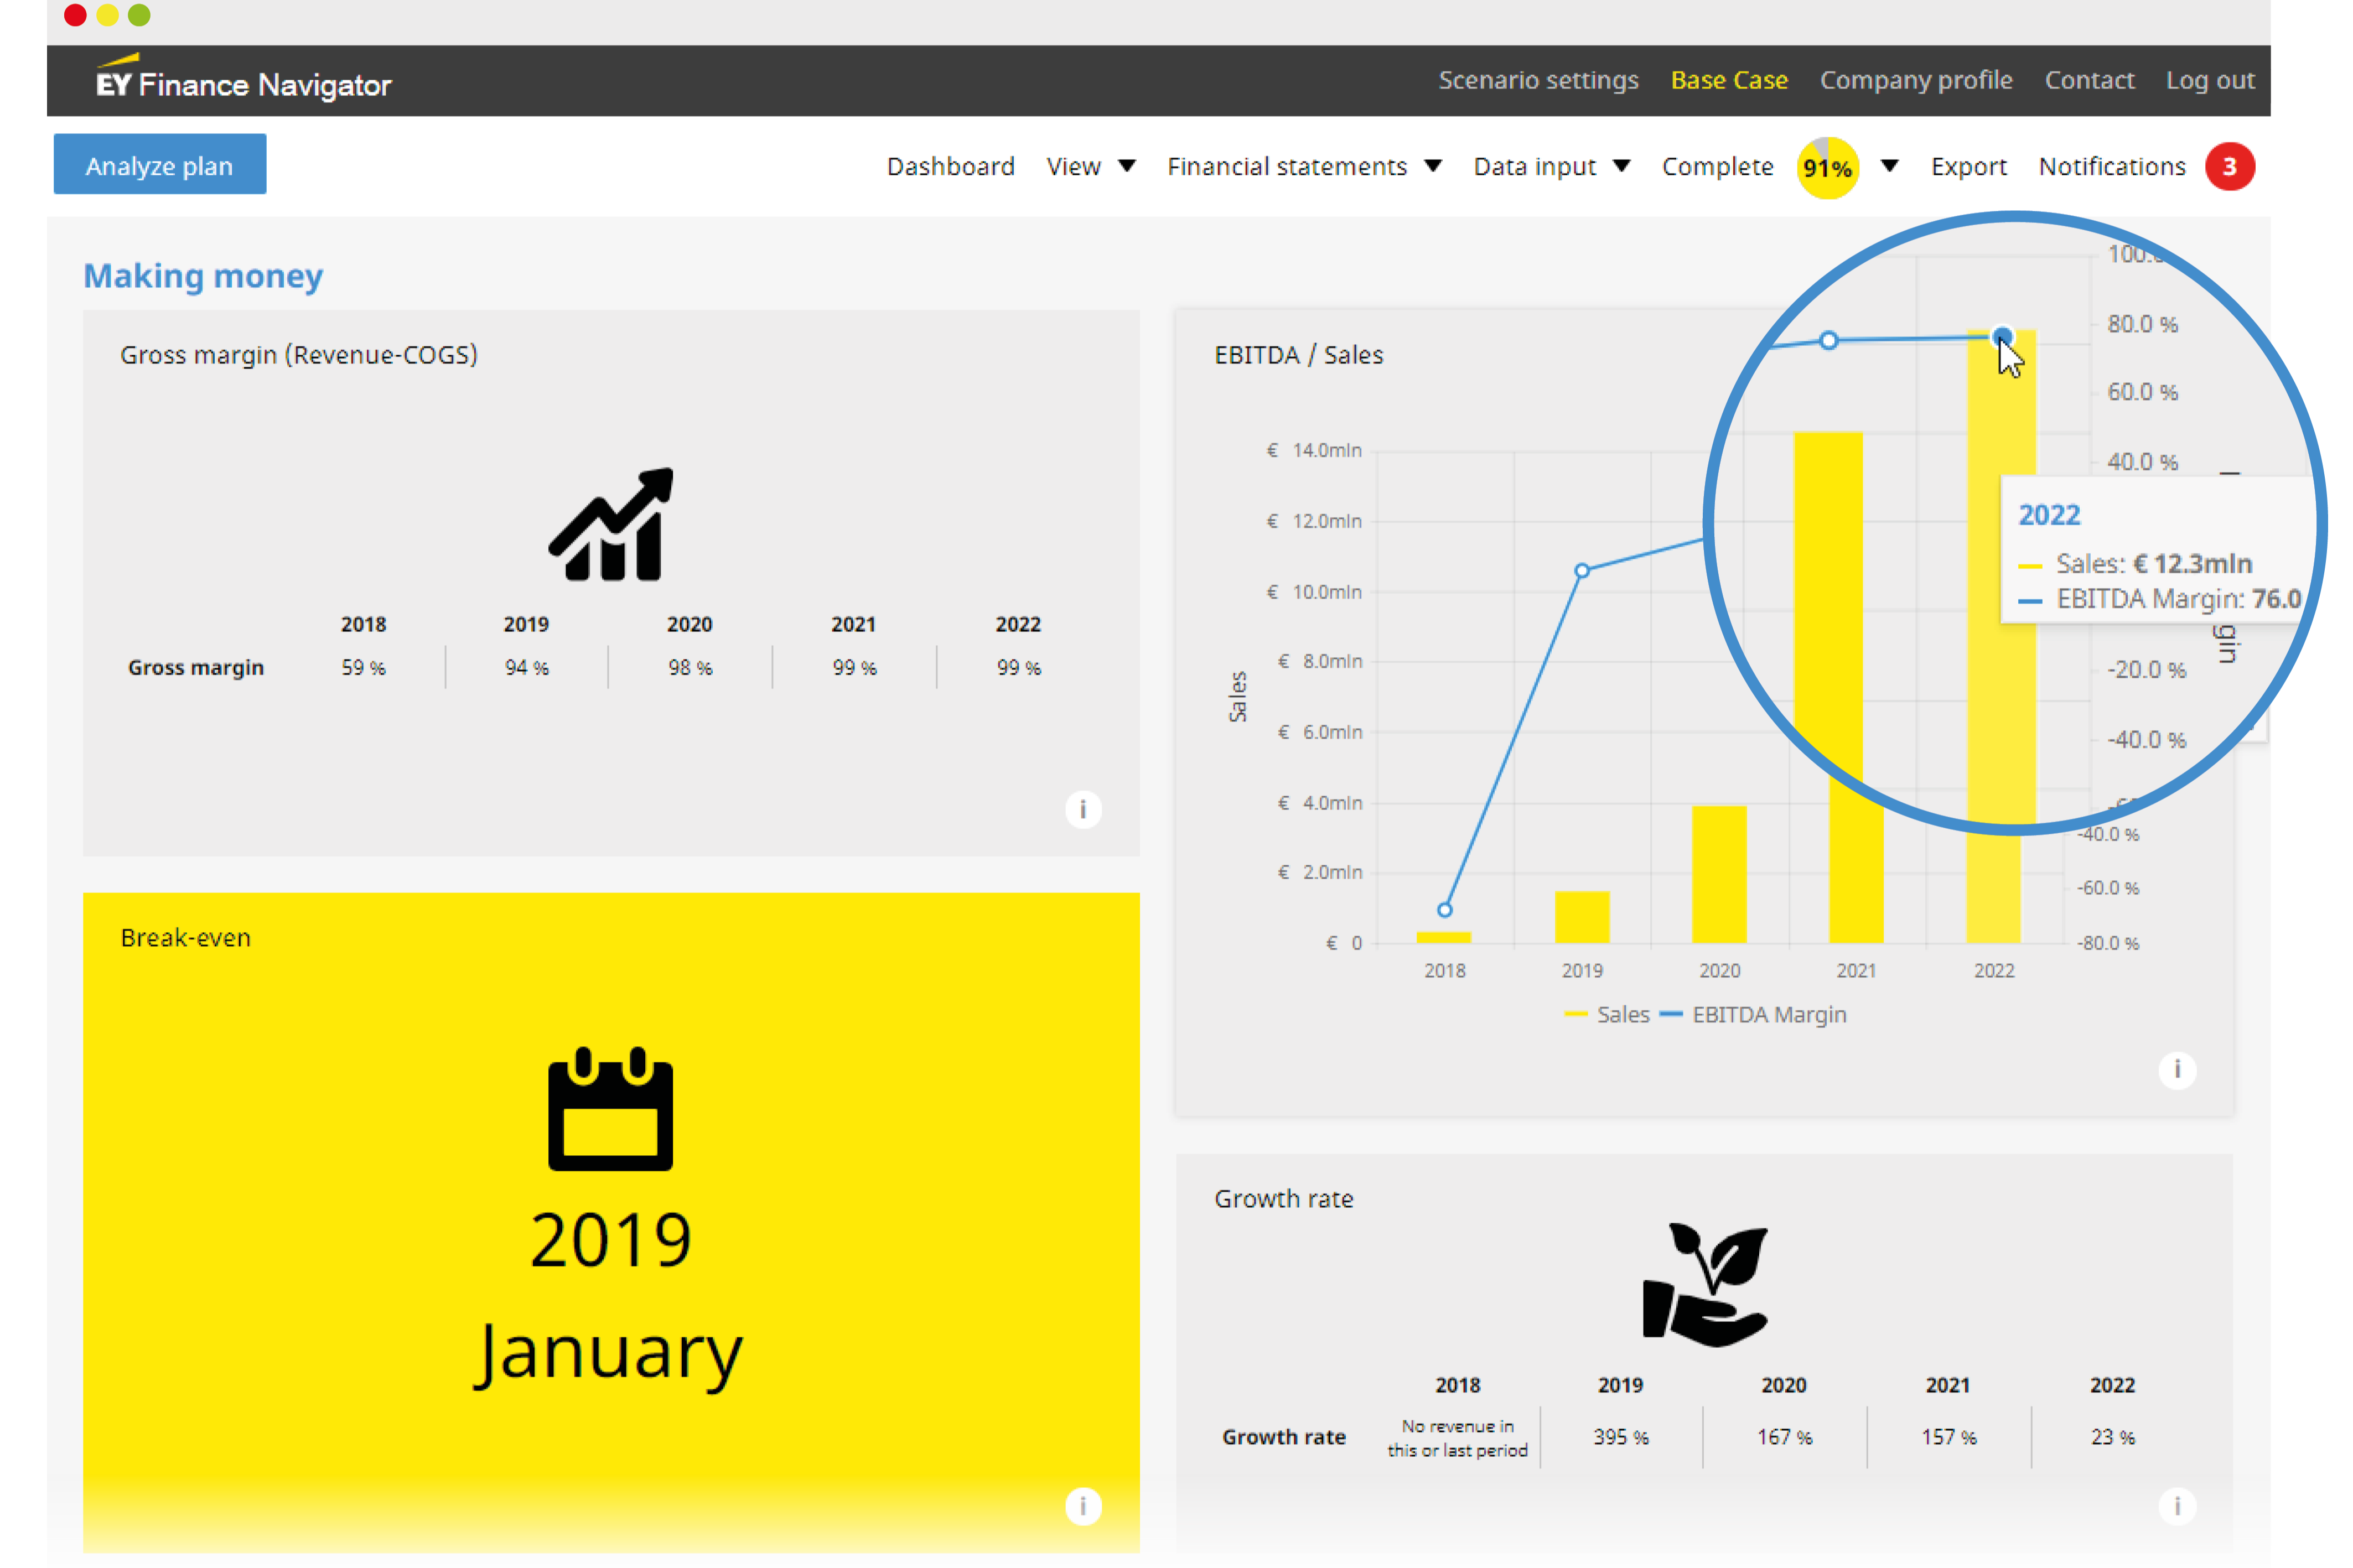 EY Finance Navigator Reviews, Pricing and Alternatives